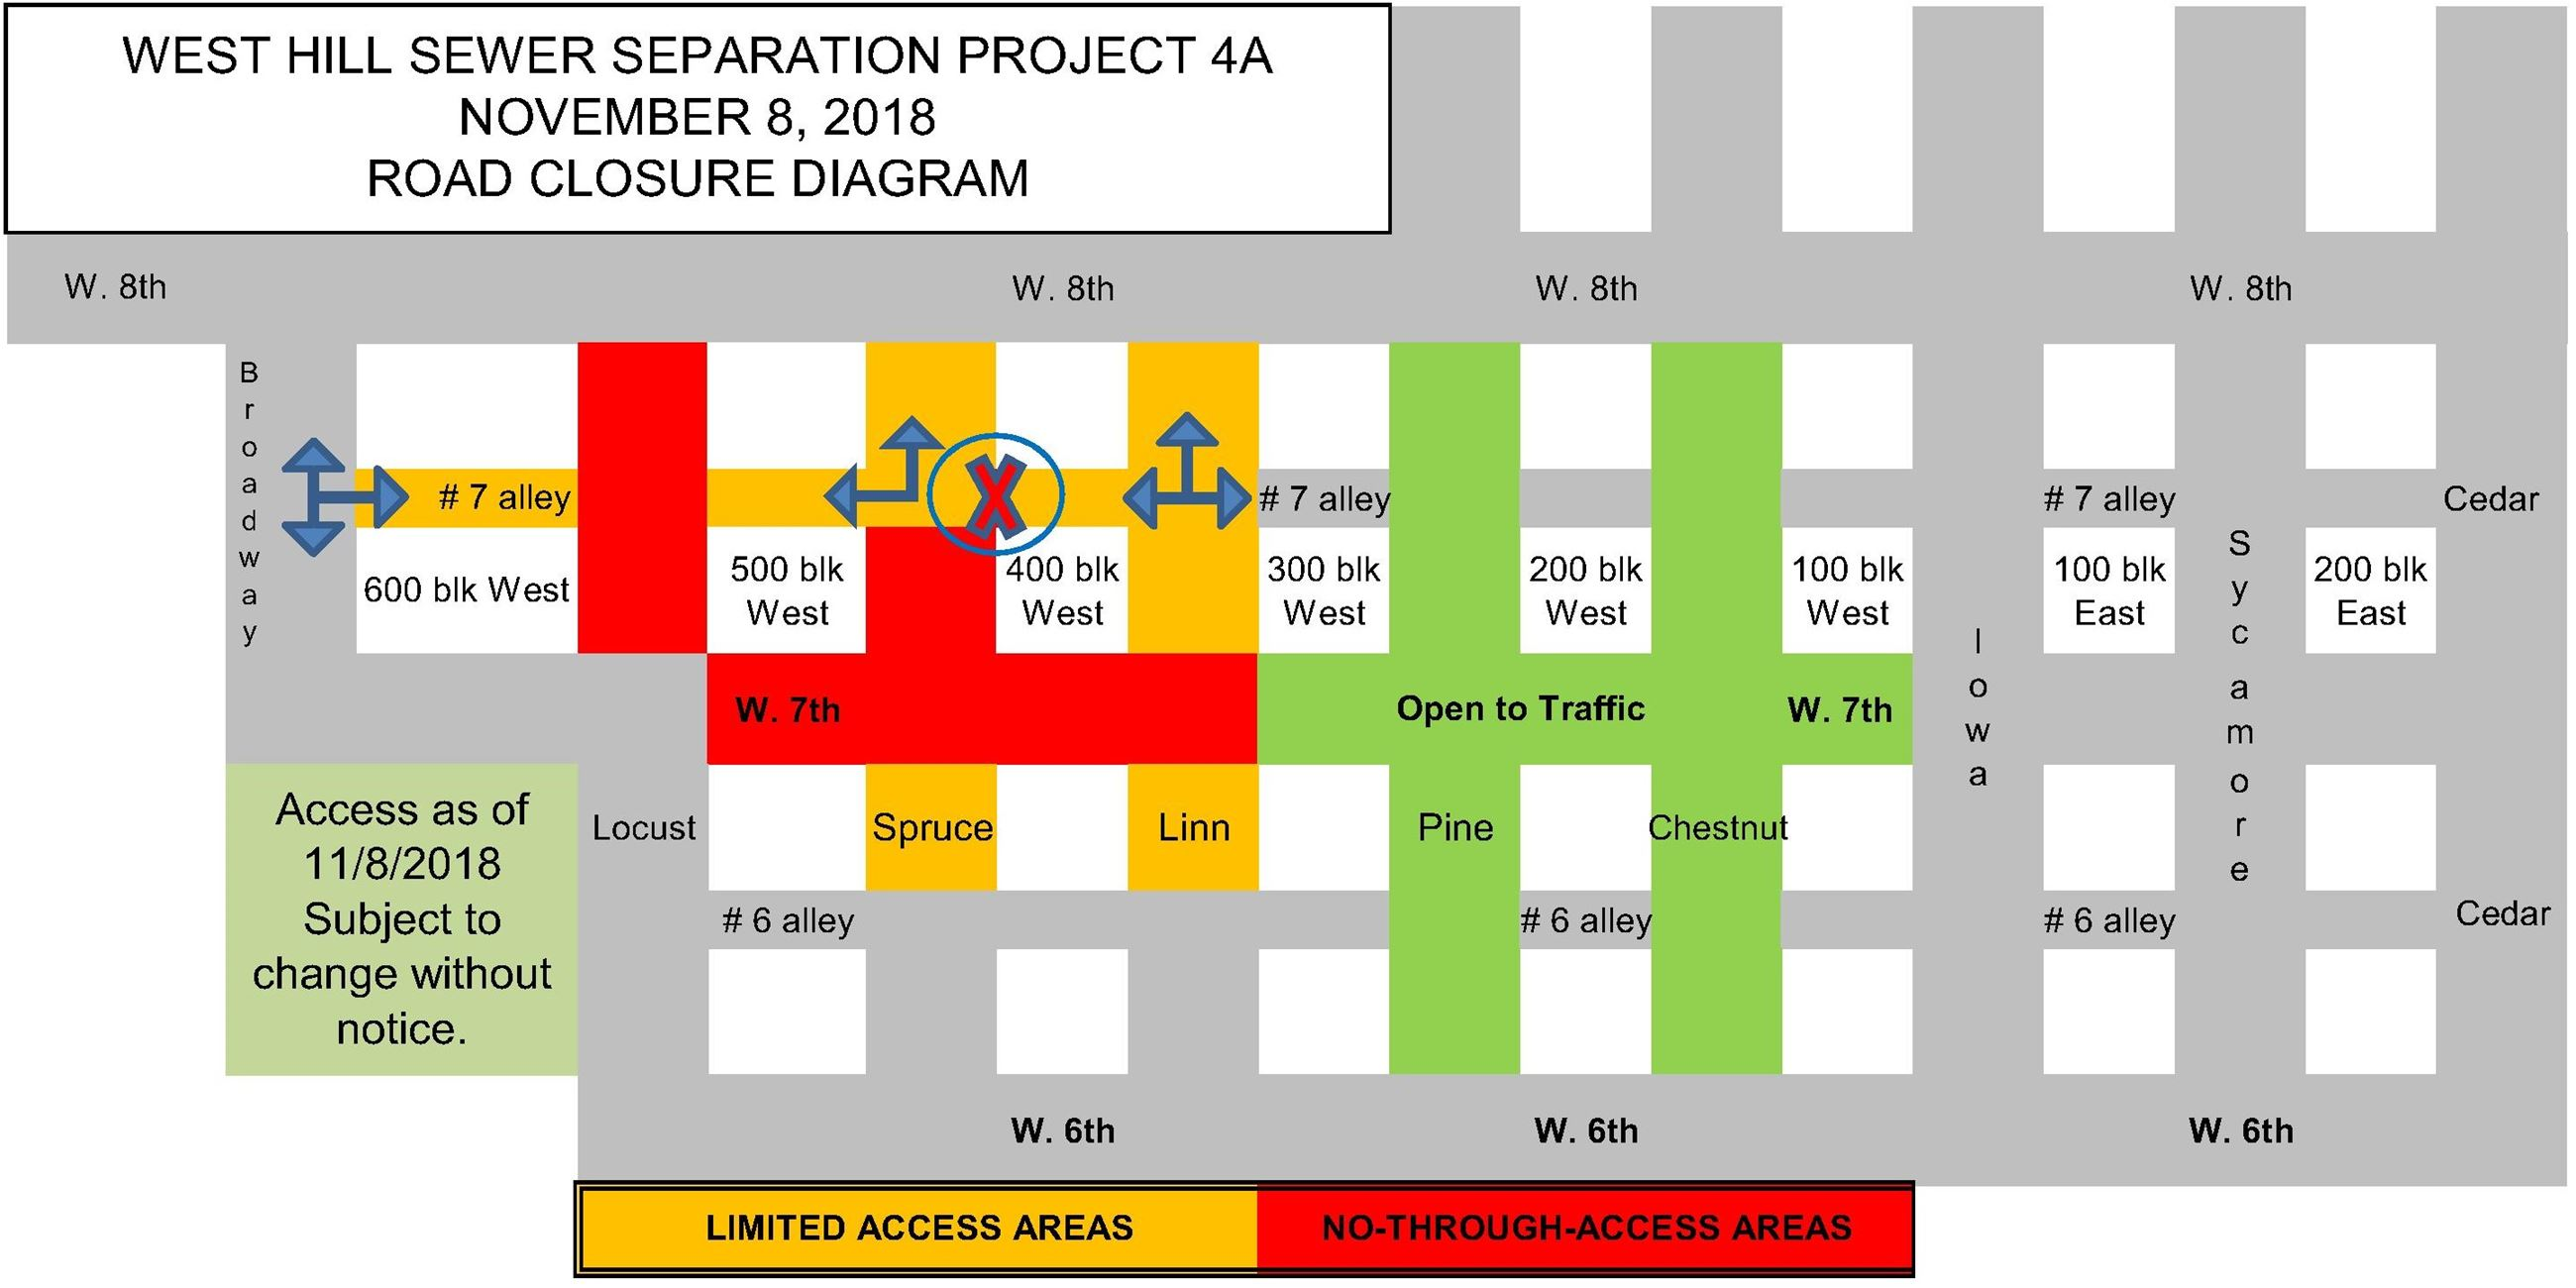 4A Road Closure Diagram 11-8-18